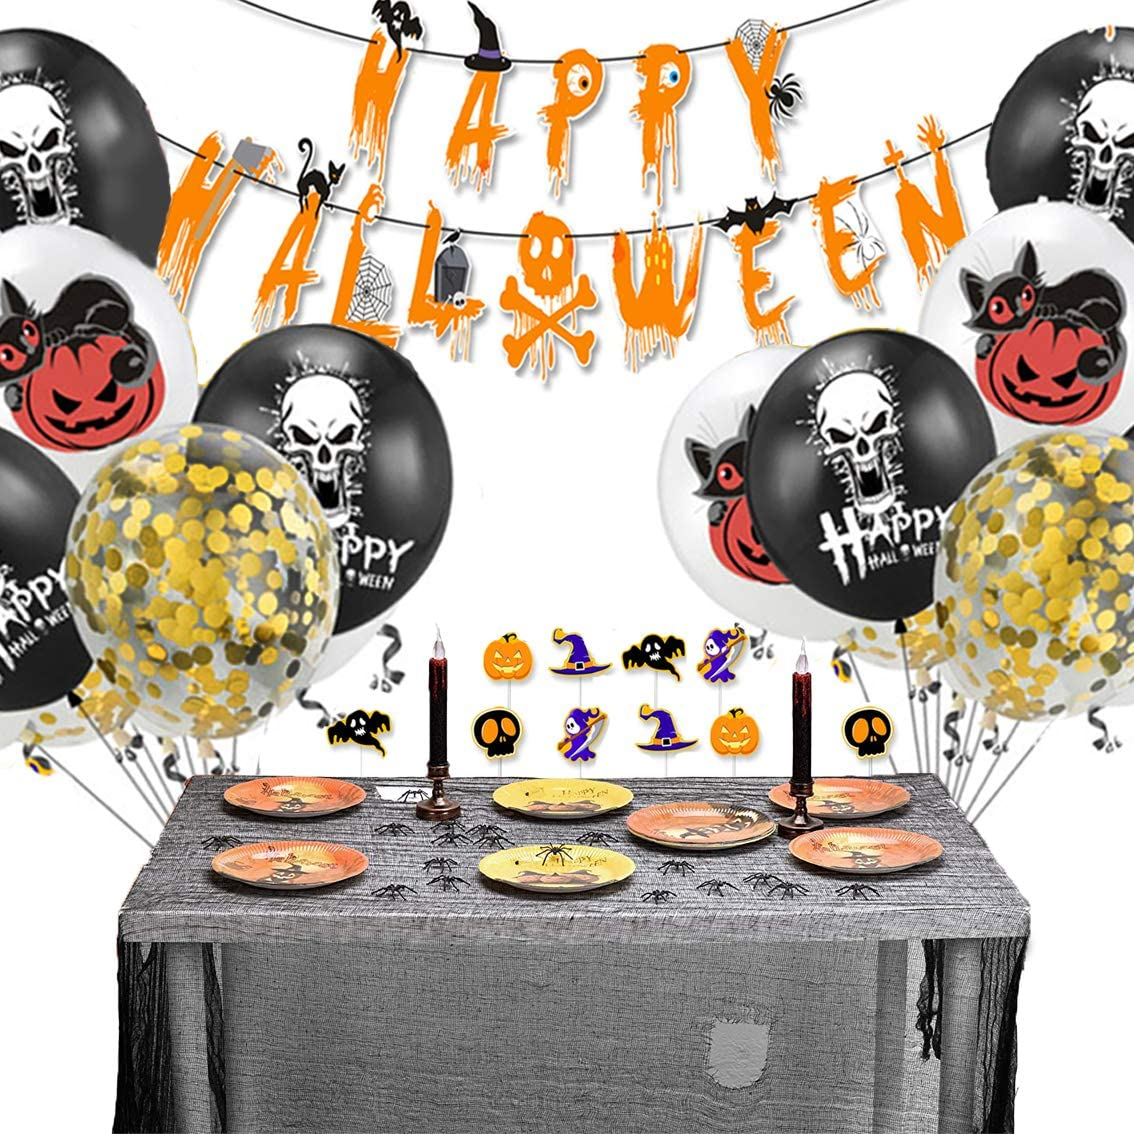 61PCS Halloween Party Supplies Balloons Kit Party Favors, Bat Spiders Pumpkin Ghost Skull Halloween Hanging Decoration with Latex Balloon Banner Cake Inserted Card Halloween Signs for Front Door Indoor Home Decor Porch Decorations